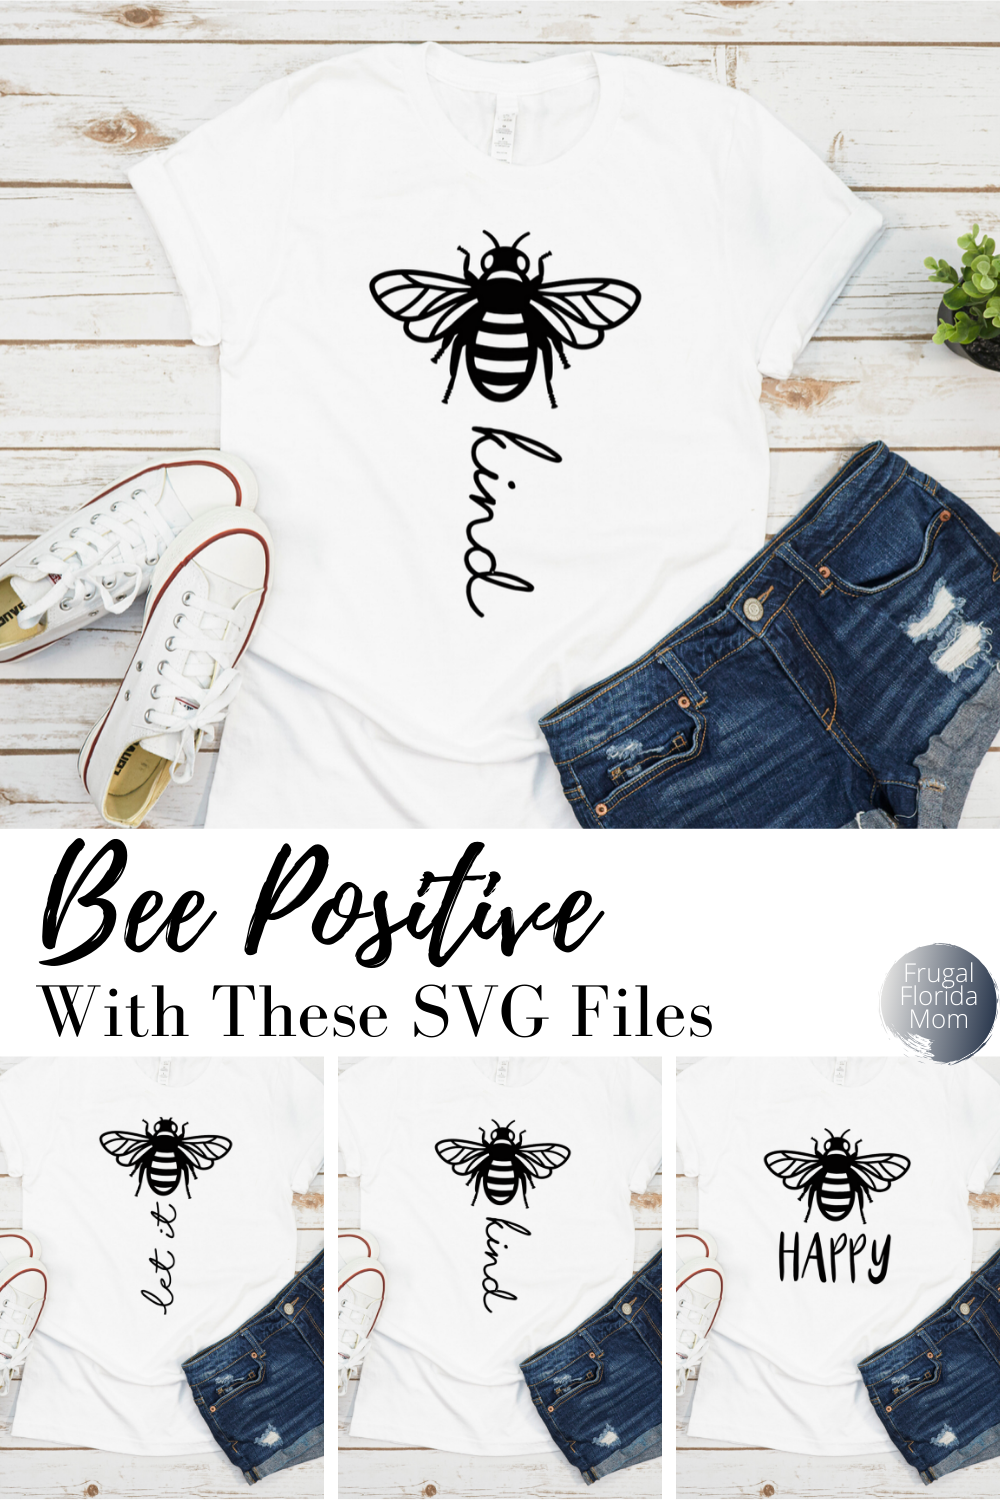 Bee Positive SVG Files